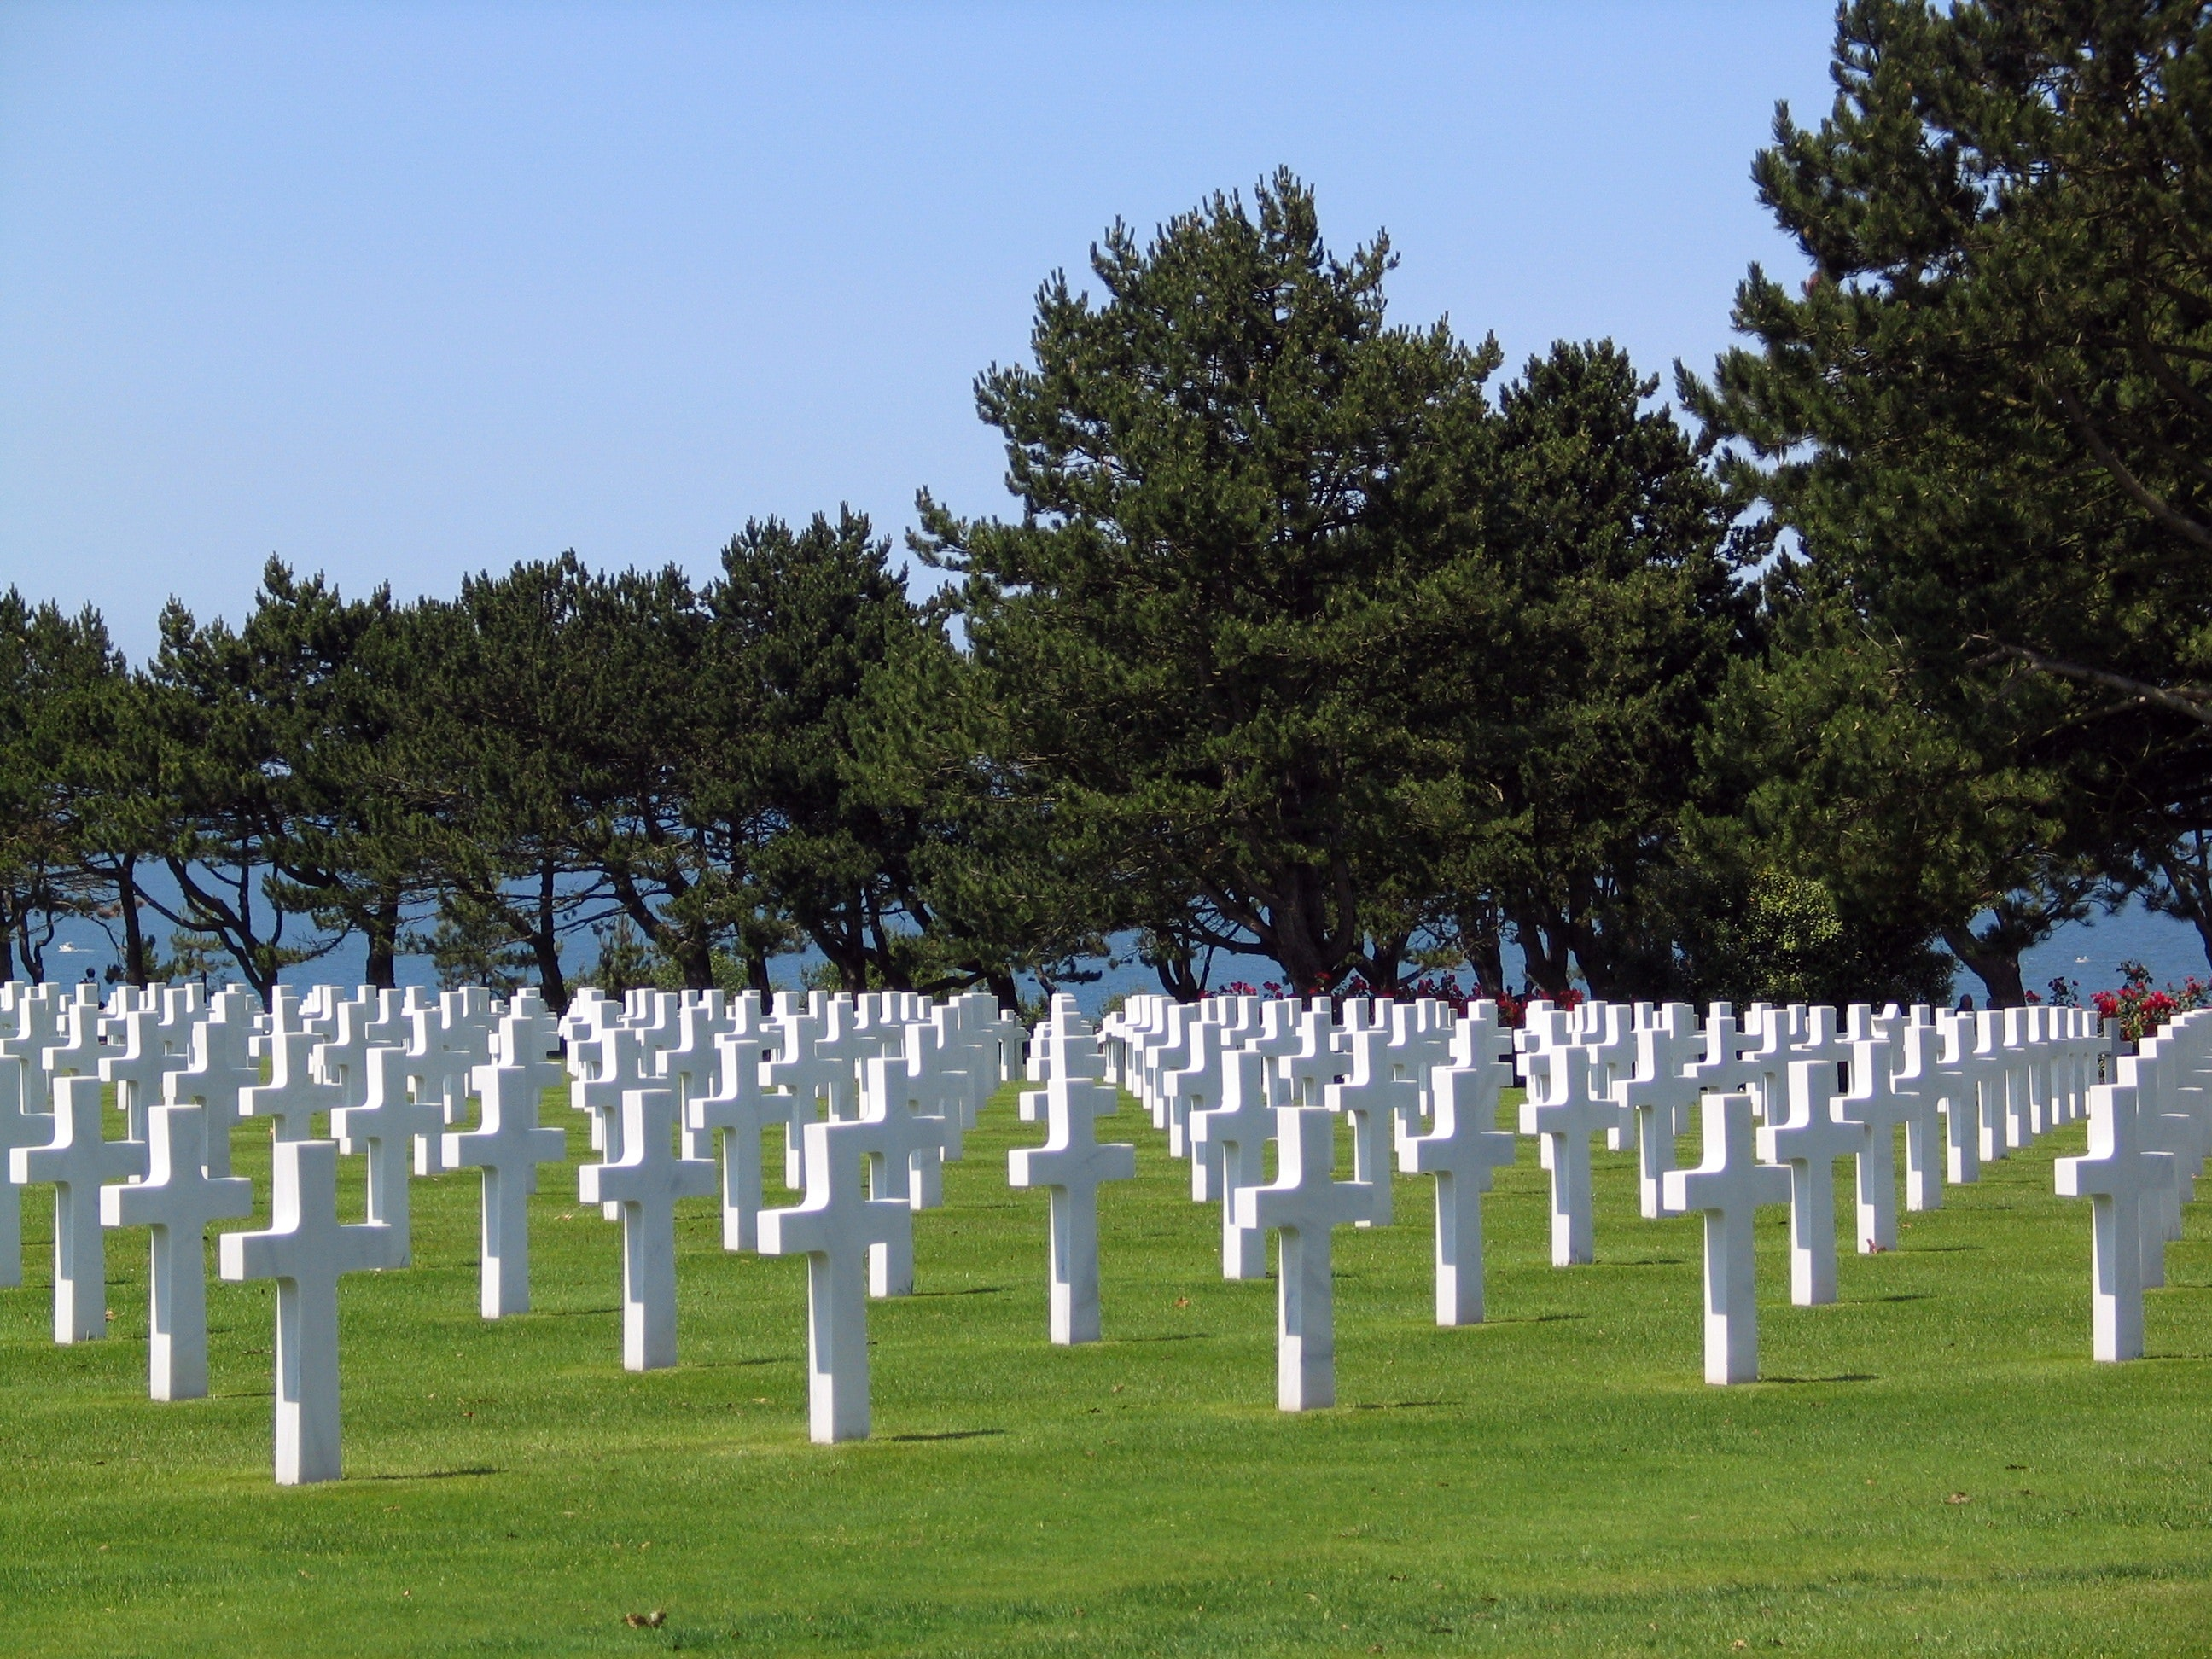 Traditional Military Graveyard